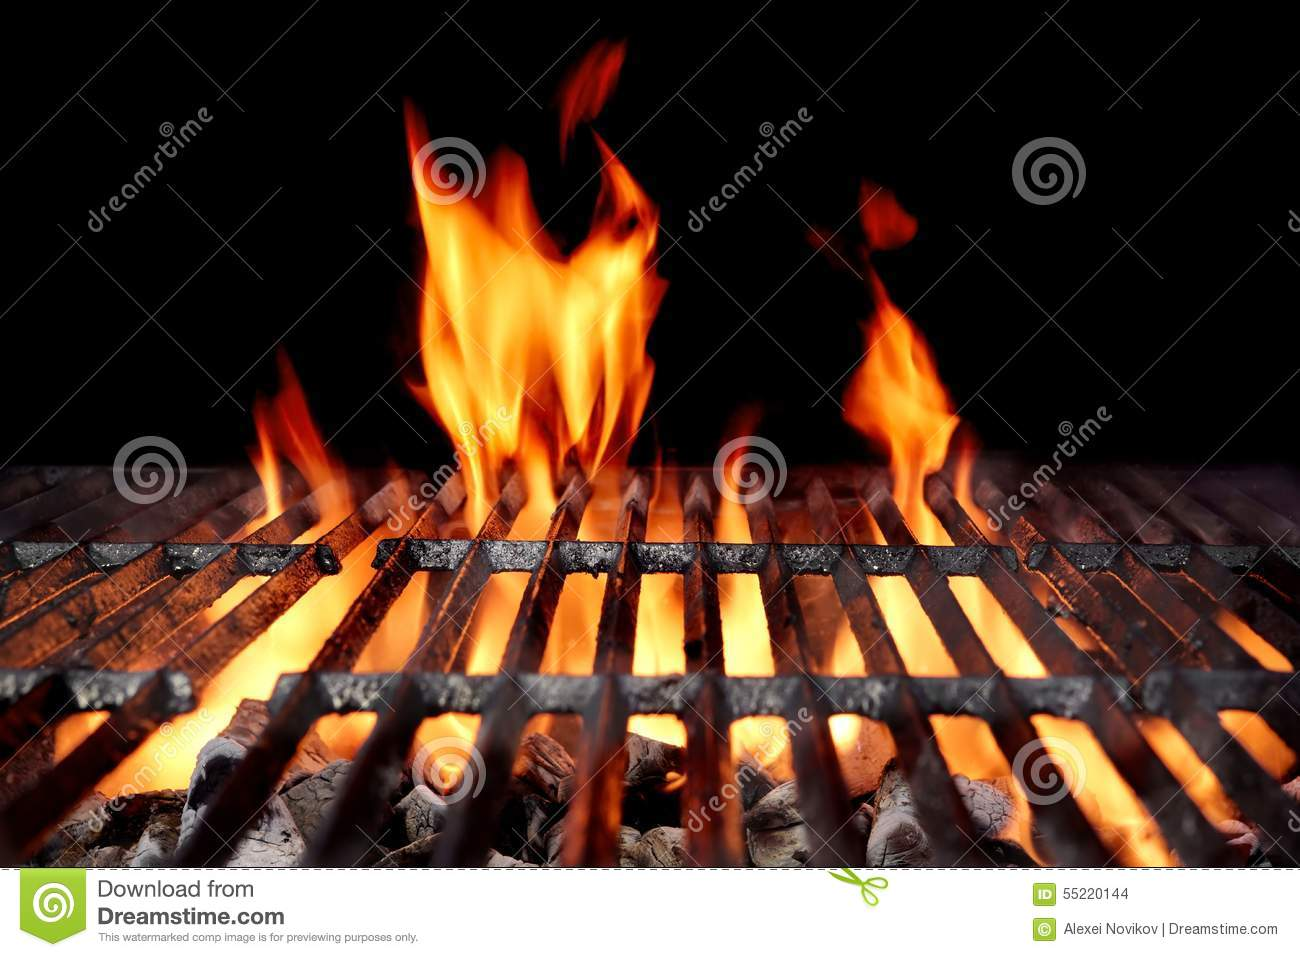 hei er leerer holzkohle bbq grill mit hellen flammen stockfoto bild von grill putzfrau 55220144. Black Bedroom Furniture Sets. Home Design Ideas